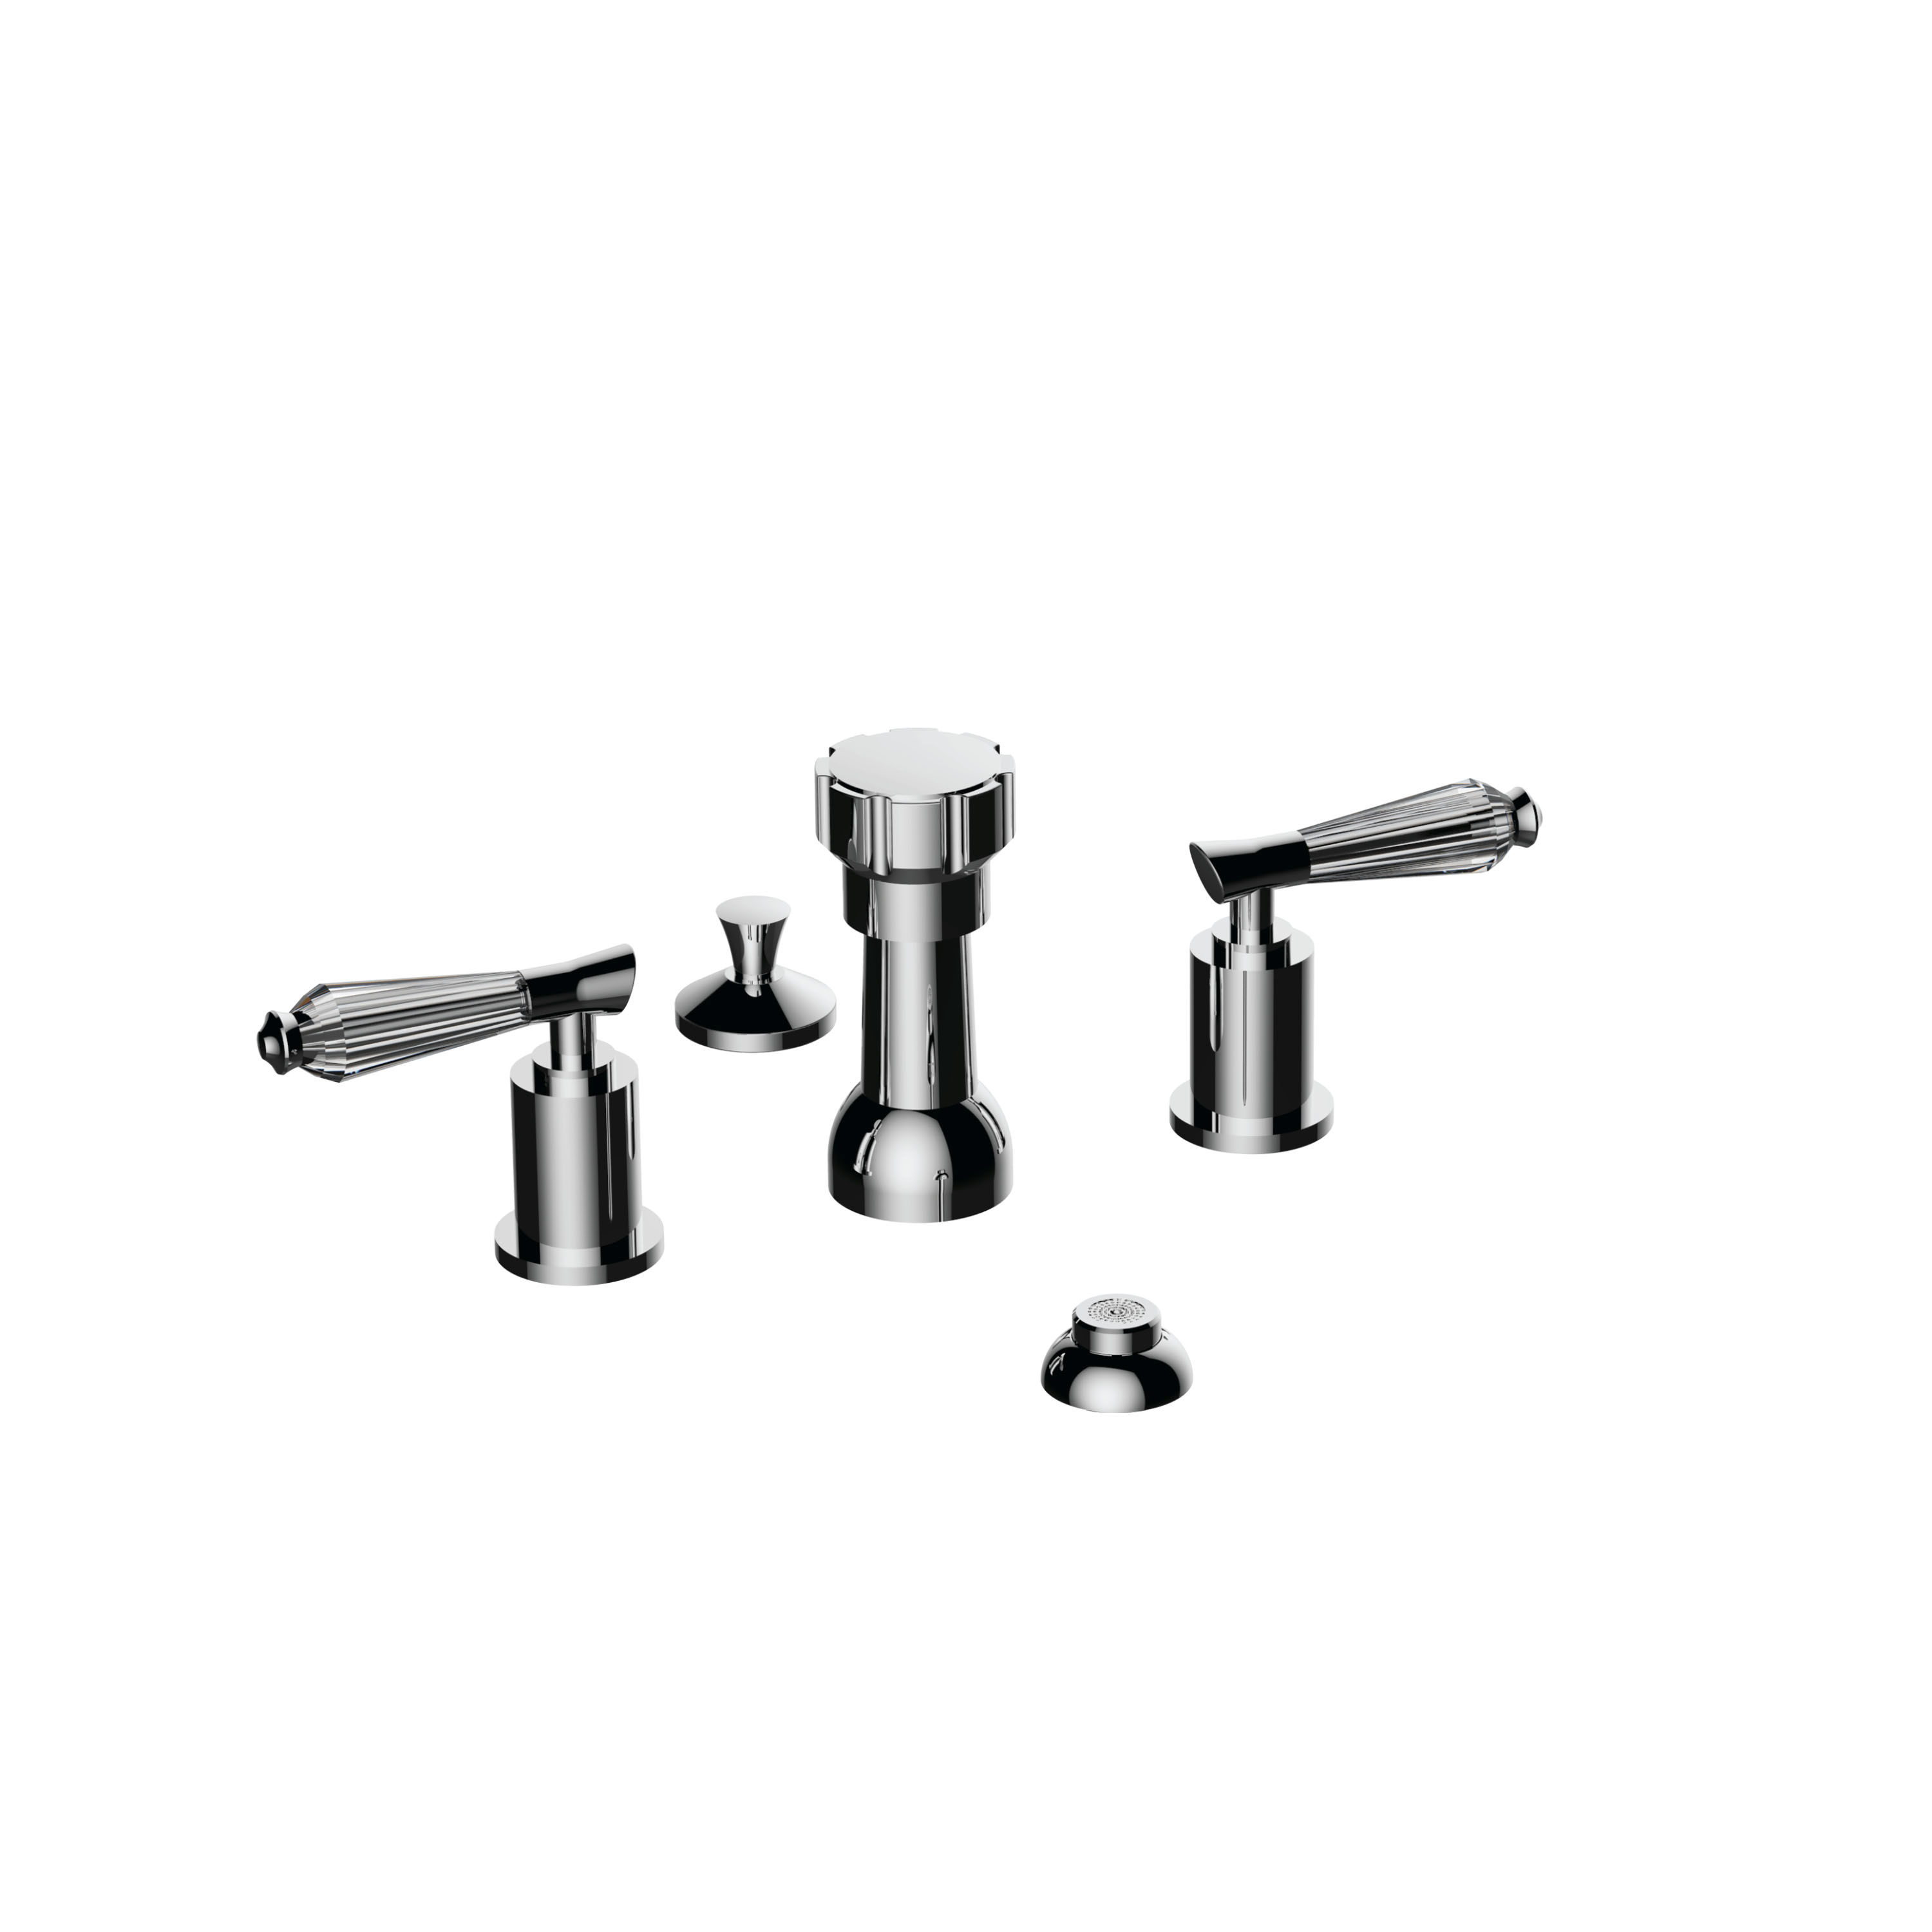 Santec 9470fc Bidet Widespread With Fc Handles Polished Chrome